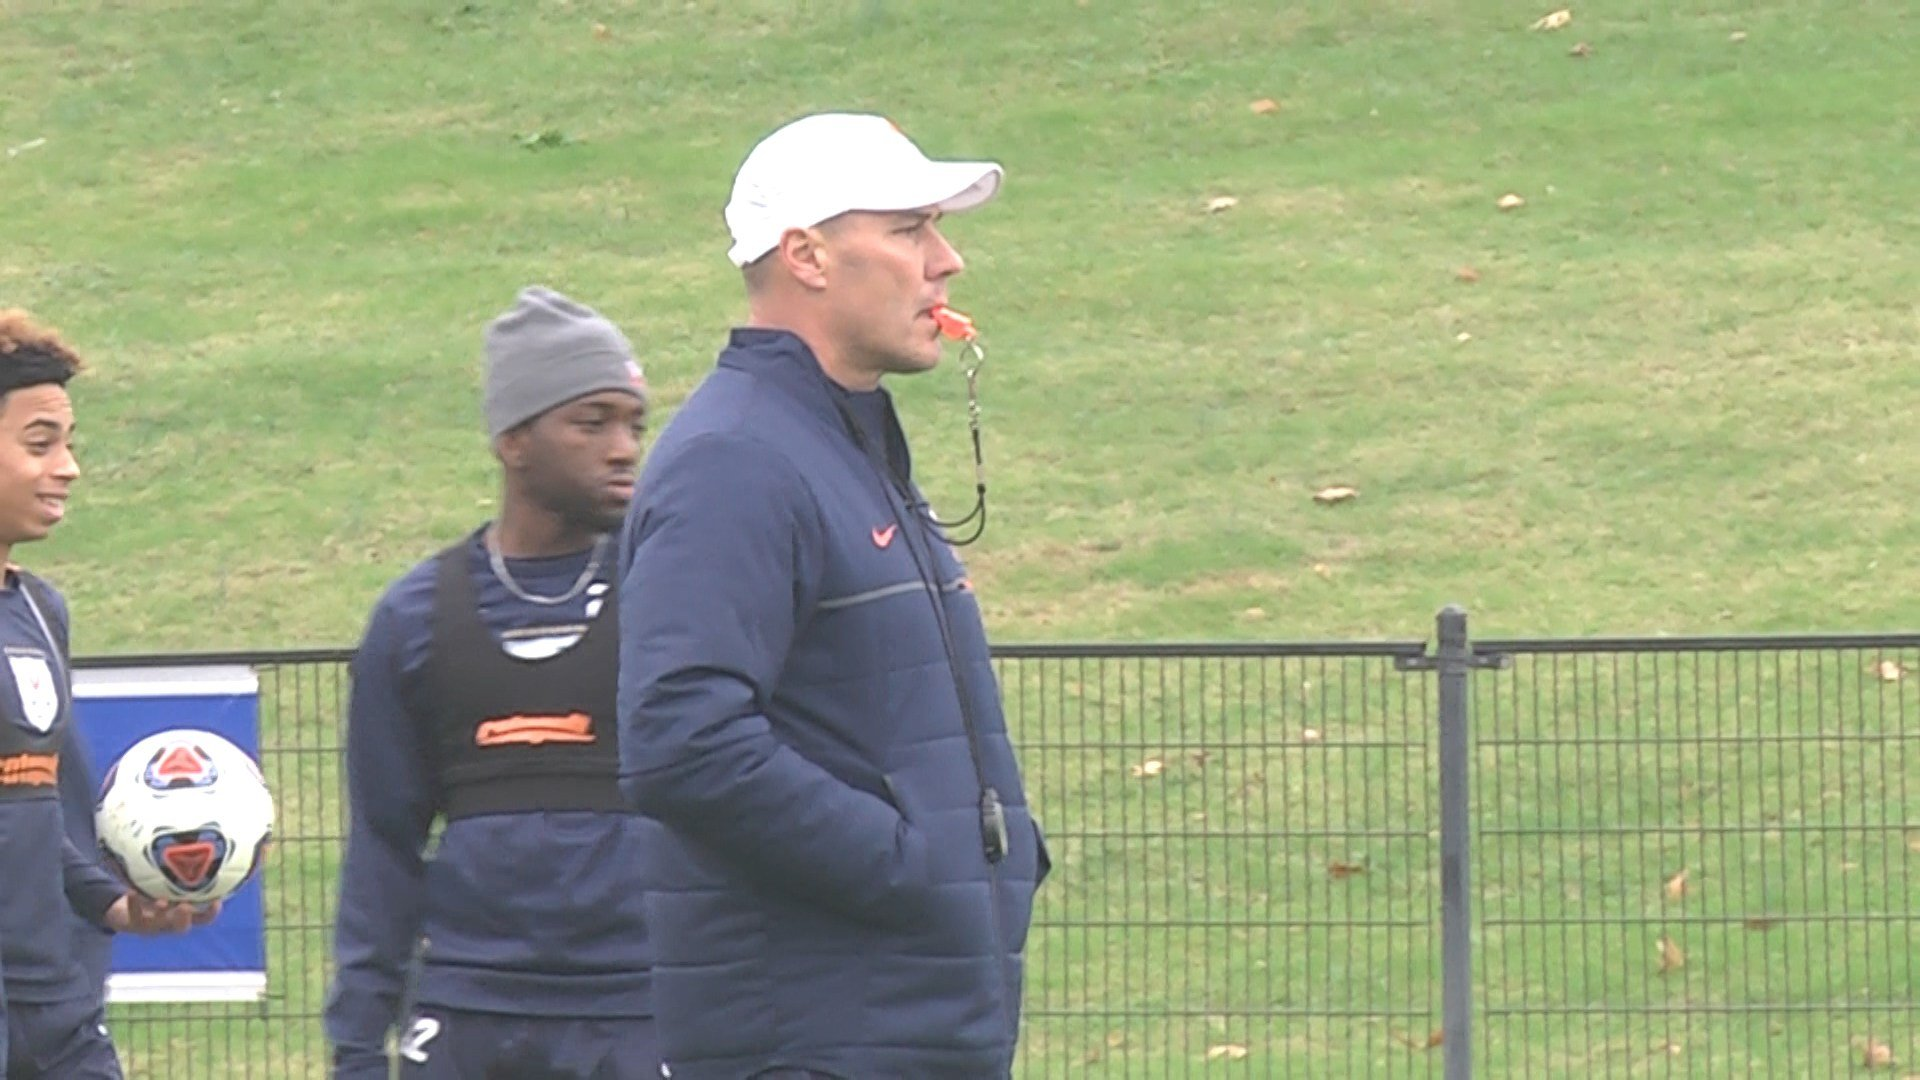 The UVa men's soccer team earned an 11-seed and 1st round bye in the NCAA tournament